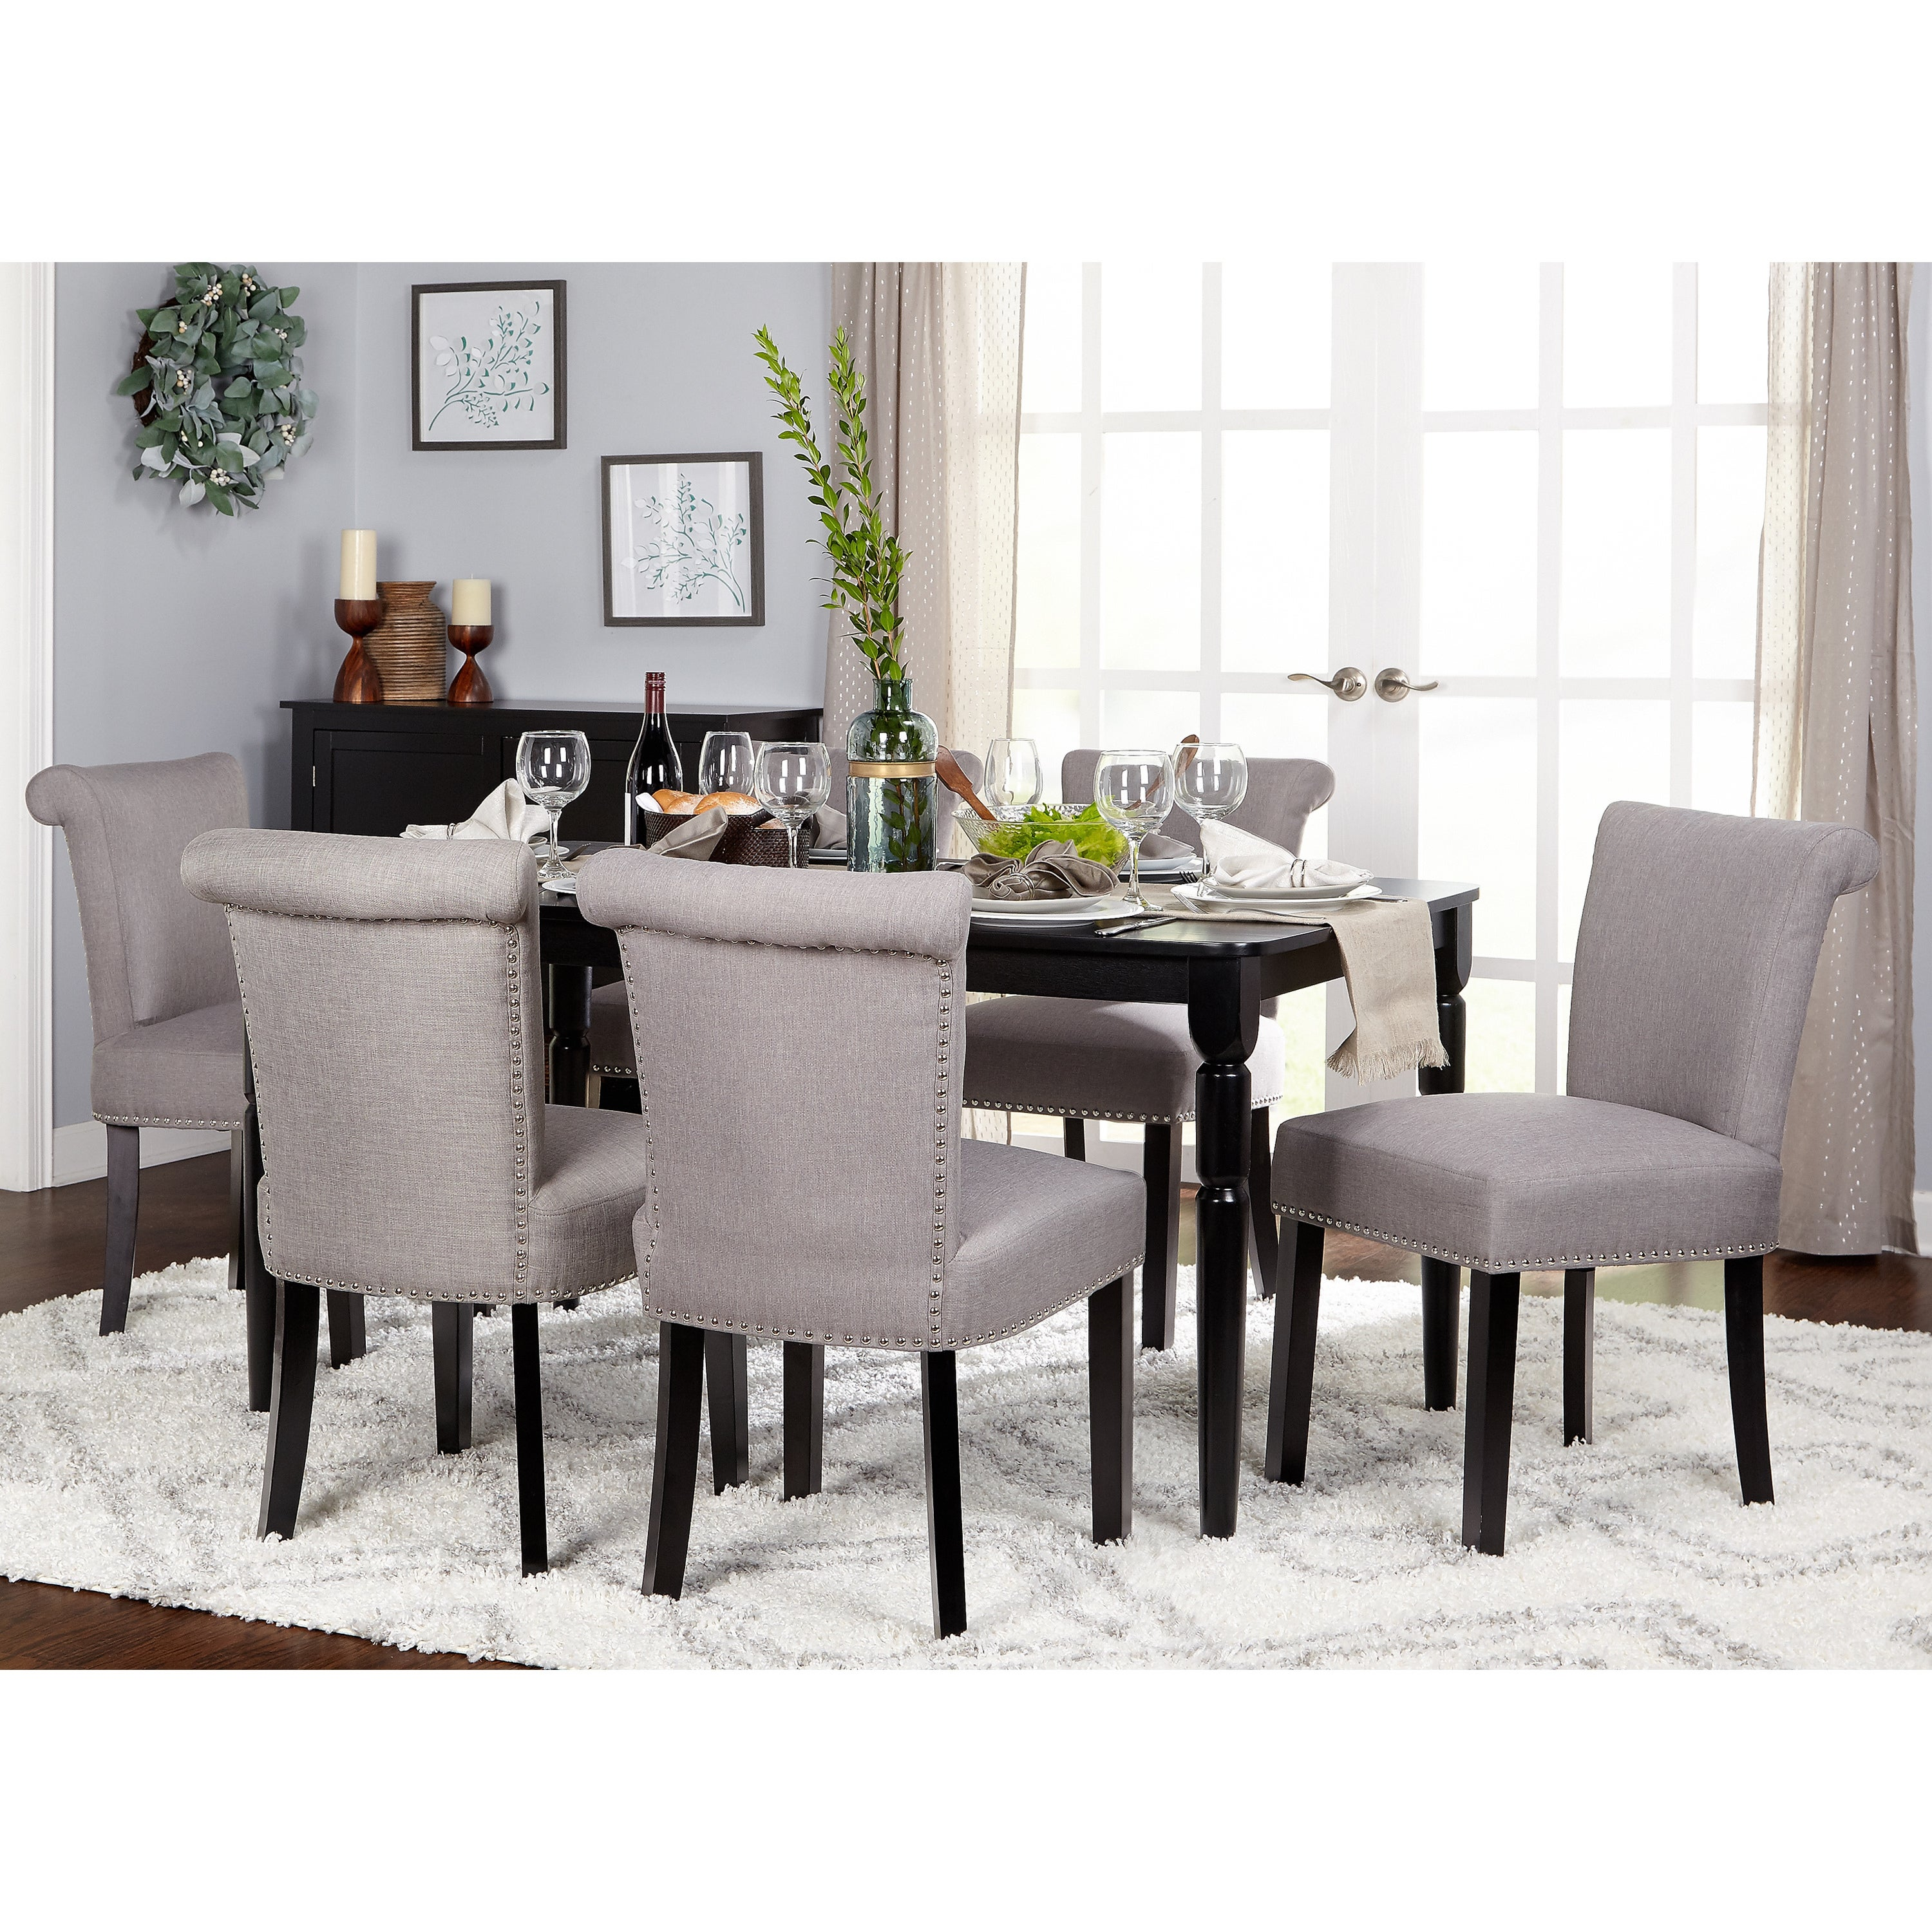 Simple Living Adeline Dining Set Free Shipping Today 13926135